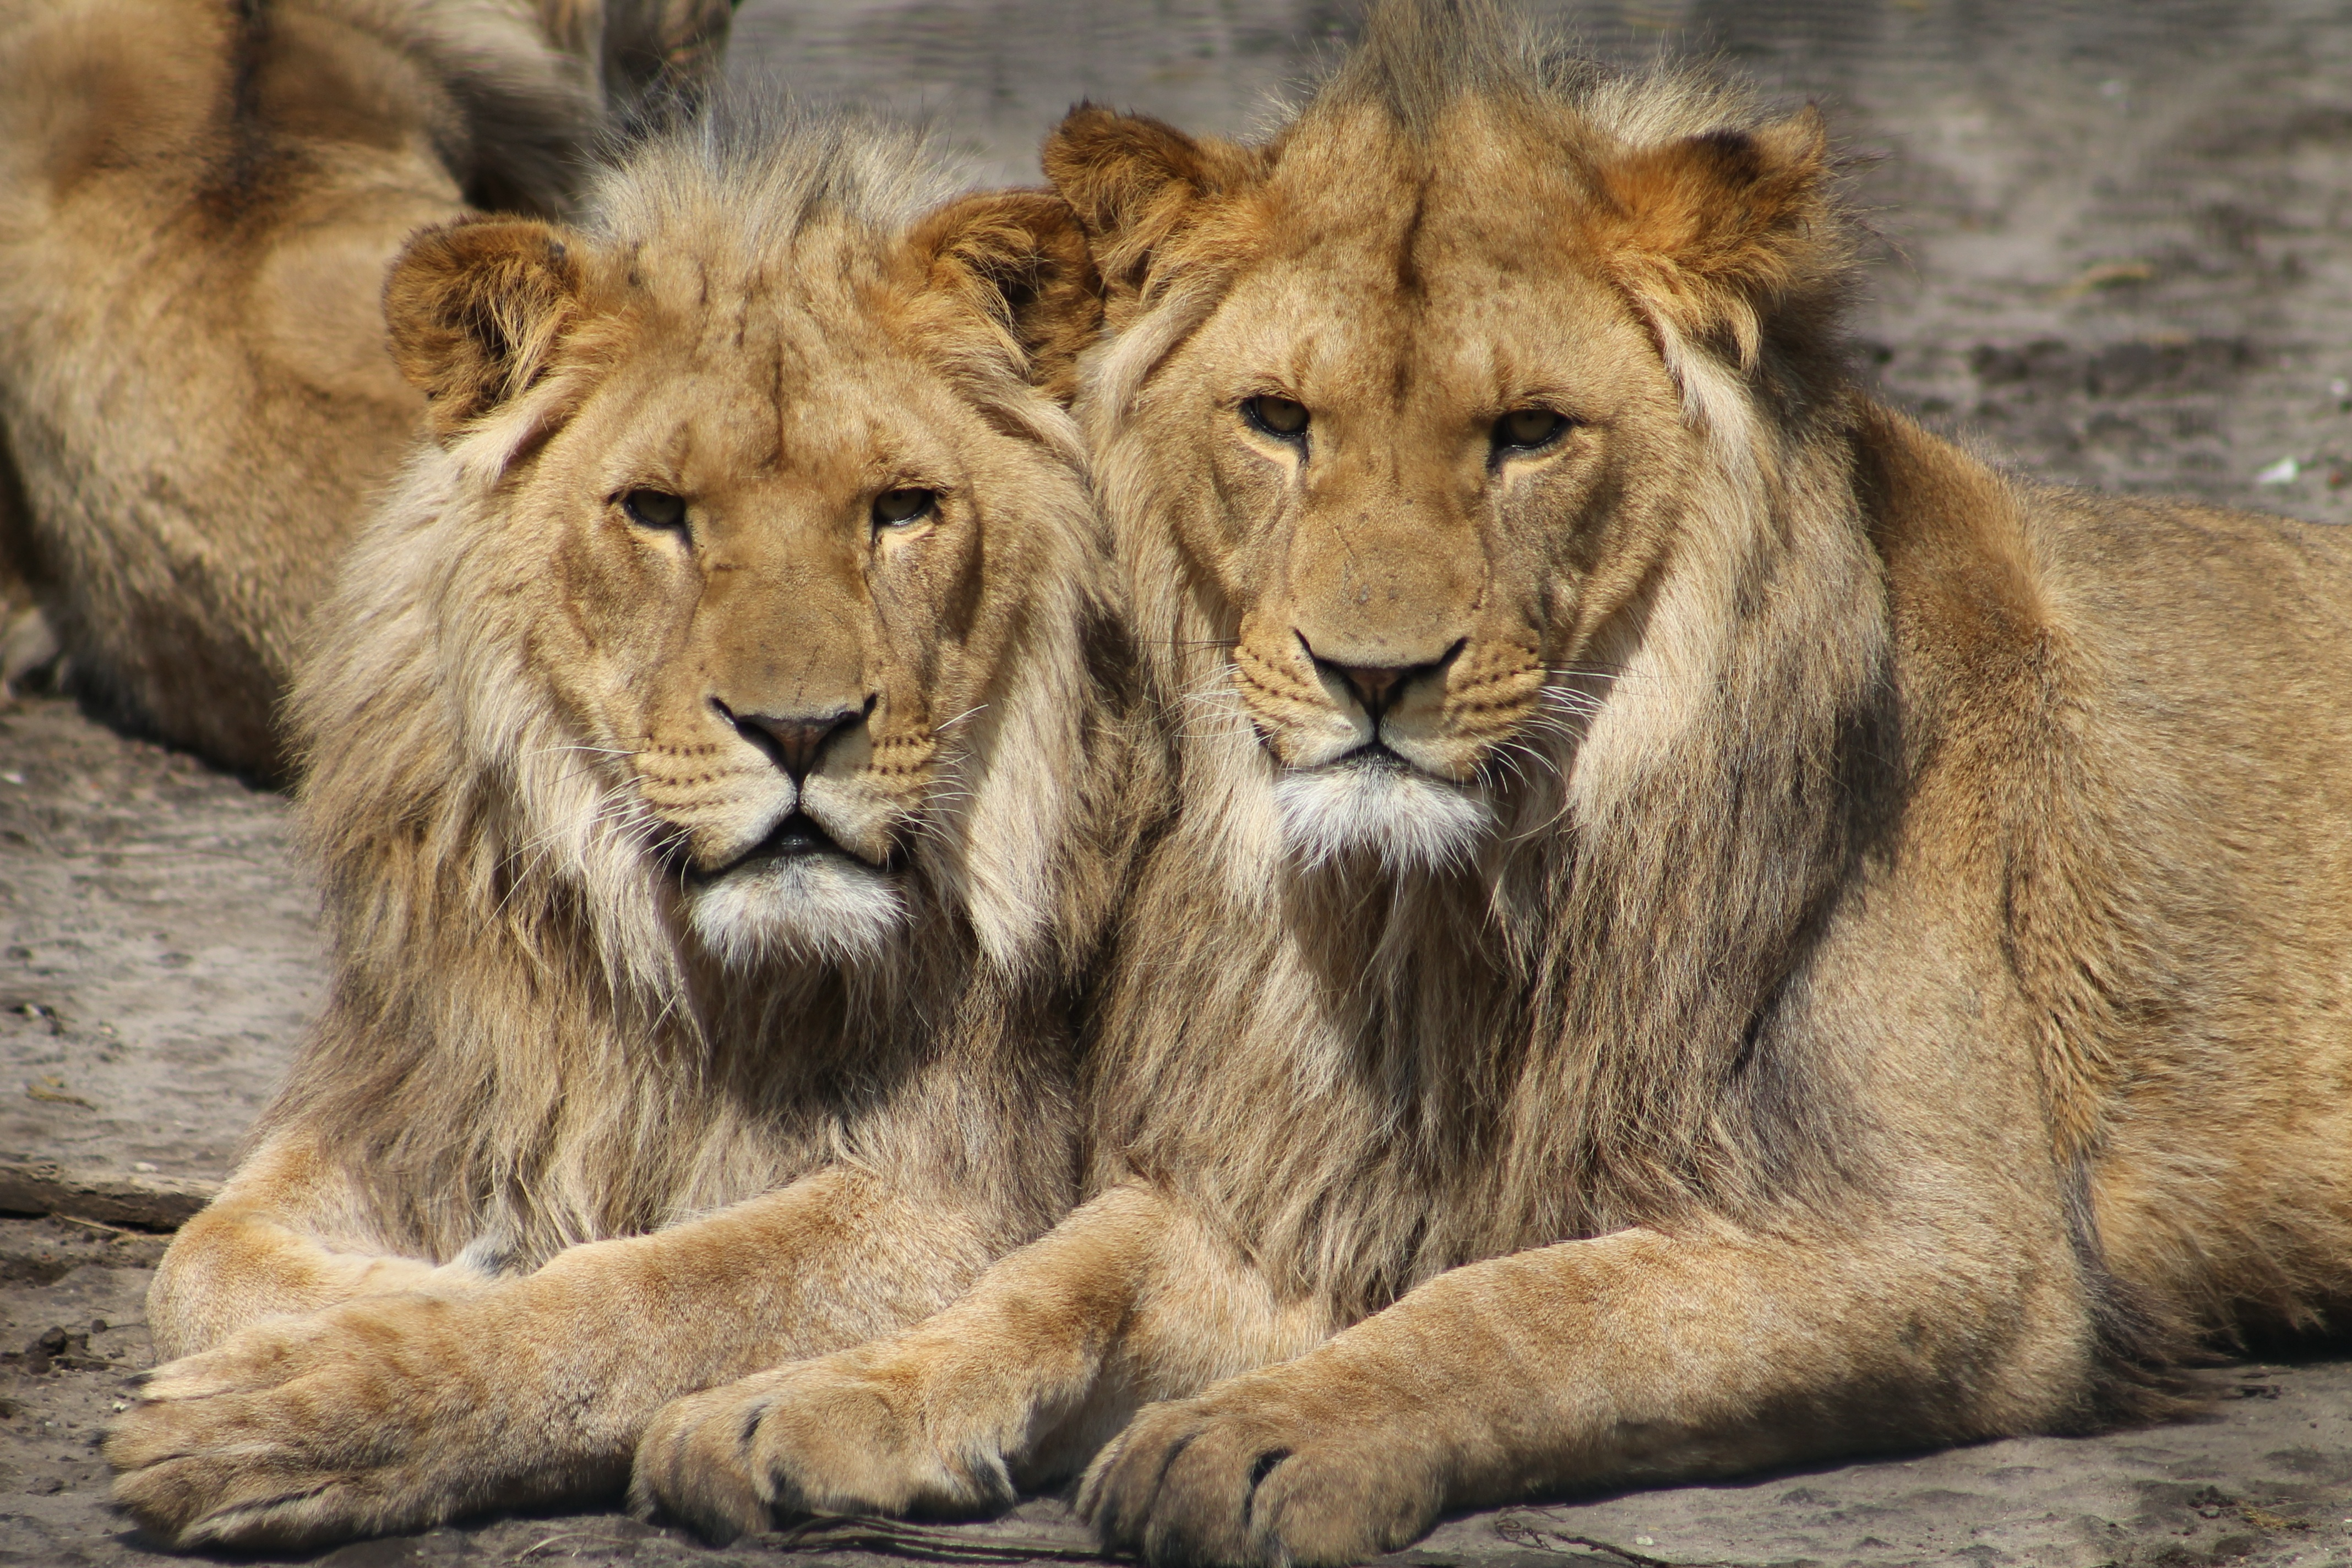 56871 download wallpaper Animals, Couple, Pair, Predators, Lions screensavers and pictures for free